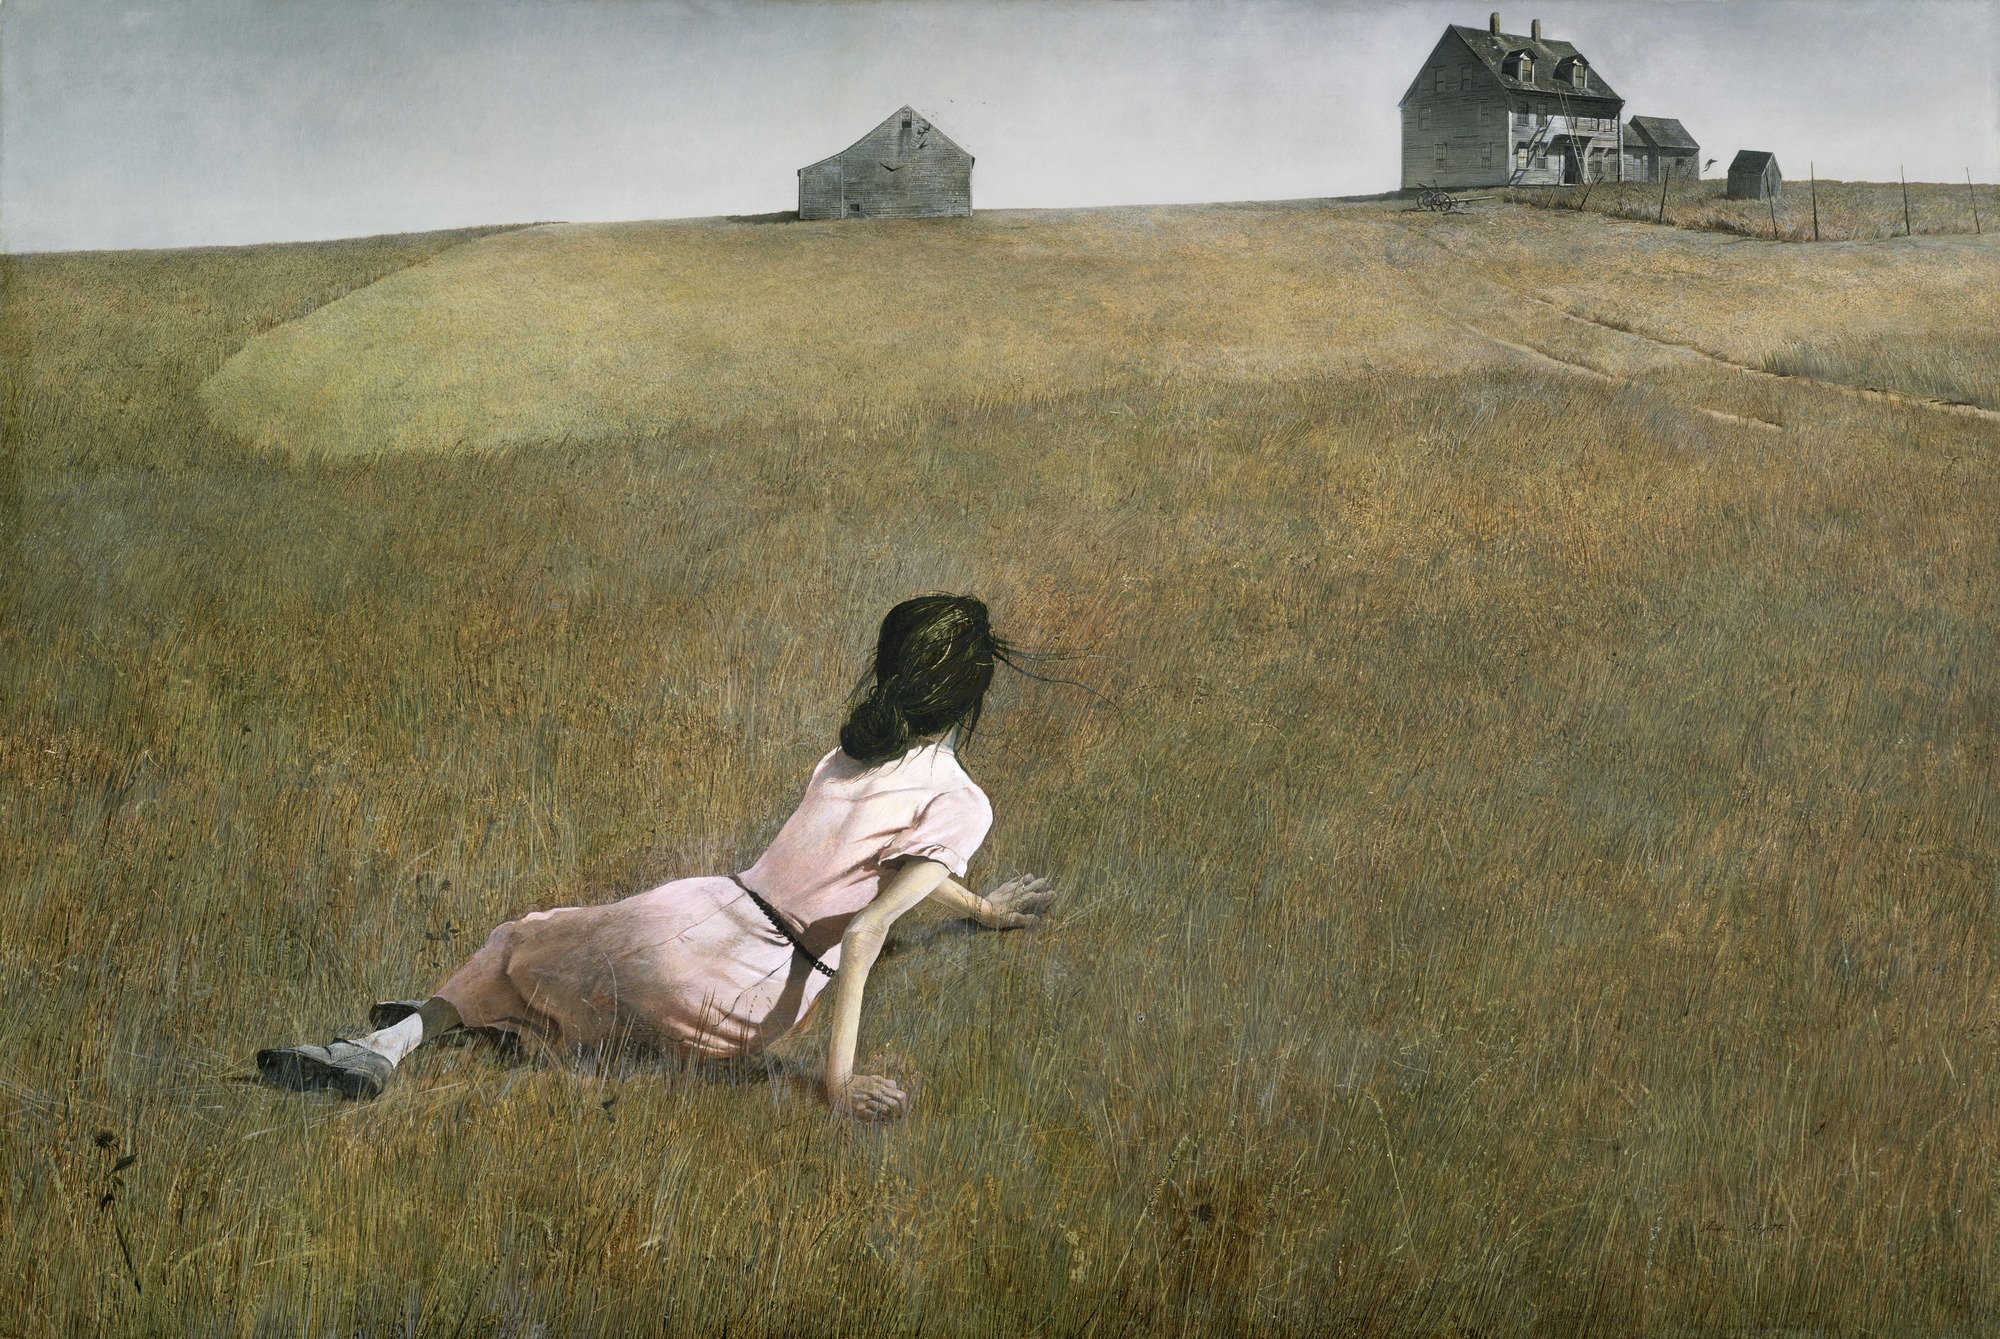 U.S. Postal Service to Mark Centennial of Andrew Wyeth's Birth with Stamps Featuring His Work